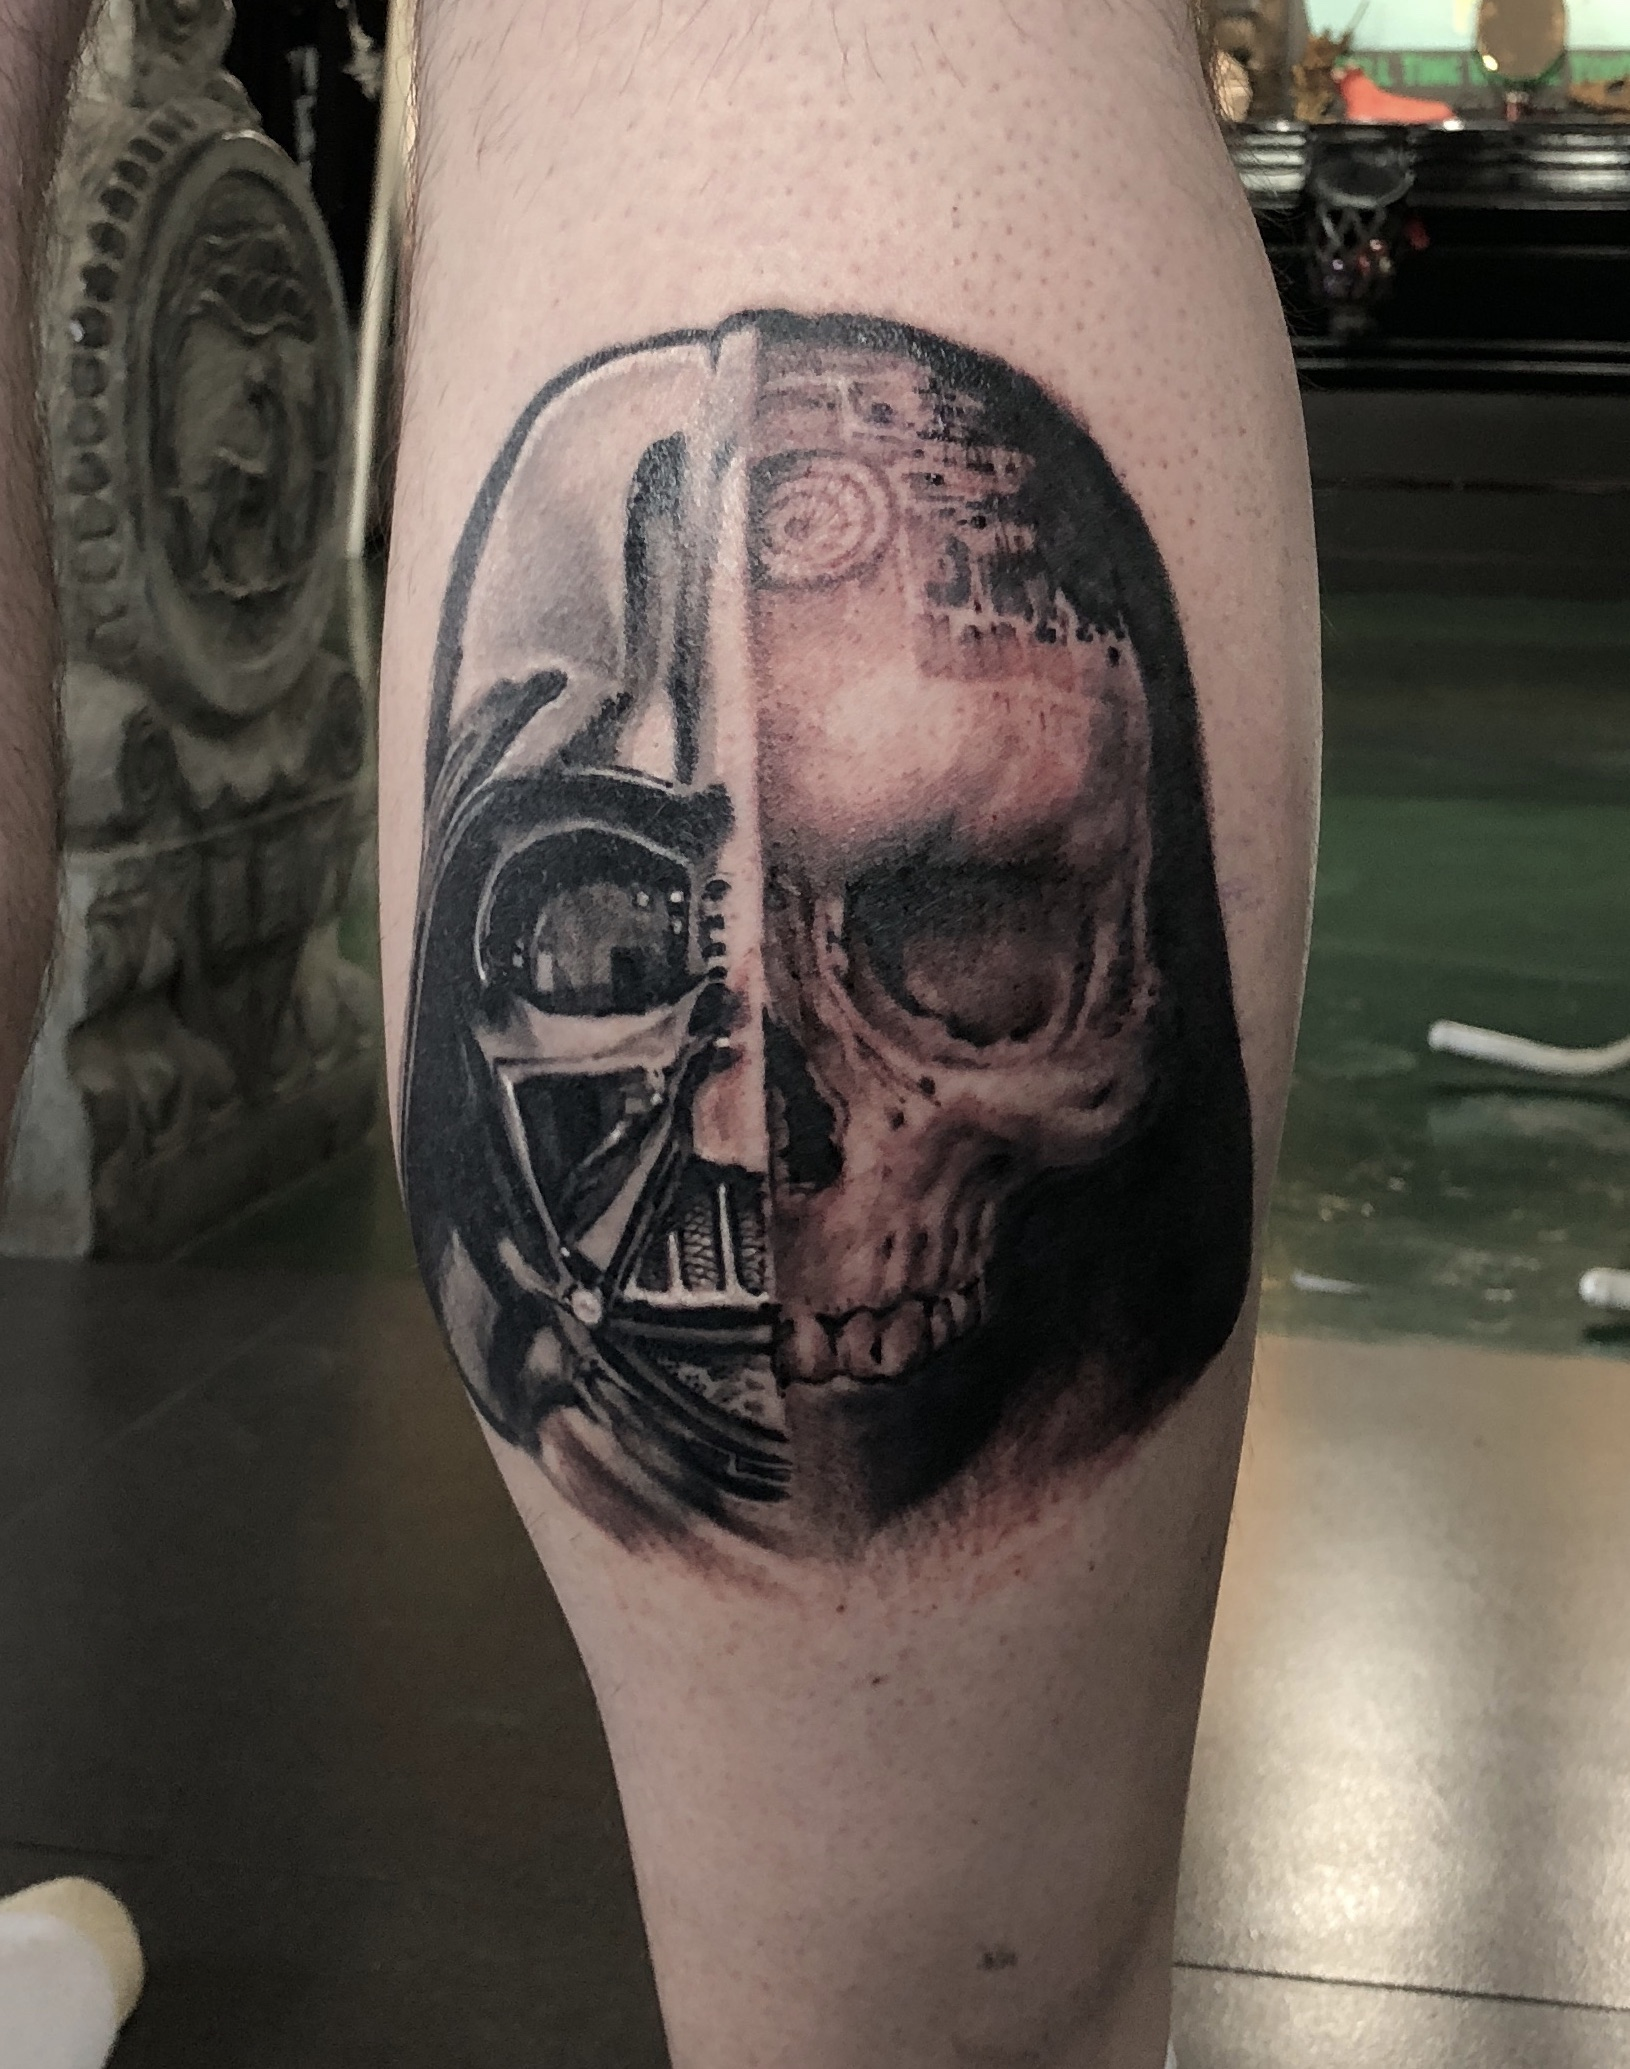 zhuo dan ting tattoo work 卓丹婷纹身作品 star war